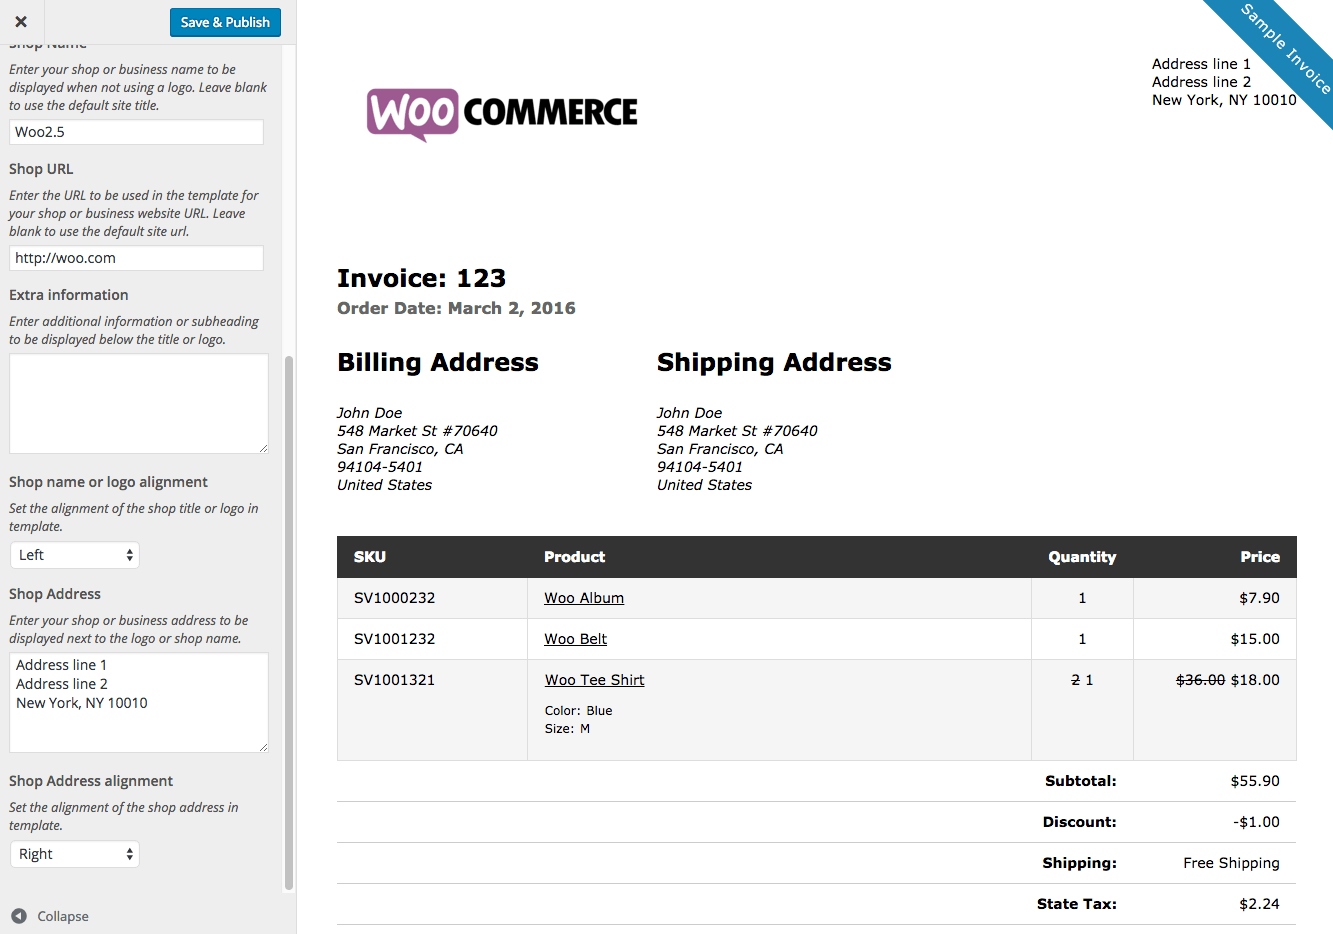 Aaaaeroincus  Marvelous Woocommerce Print Invoices Amp Packing Lists  Woocommerce Docs With Fascinating Woocommerce Print Invoices  Packing Lists Customizer With Archaic Potato Soup Receipt Also Ways To Organize Receipts In Addition Receipt For Charitable Donation And In Kind Receipt As Well As Credit Card Receipts Template Additionally How To Write A Receipt Of Sale From Docswoocommercecom With Aaaaeroincus  Fascinating Woocommerce Print Invoices Amp Packing Lists  Woocommerce Docs With Archaic Woocommerce Print Invoices  Packing Lists Customizer And Marvelous Potato Soup Receipt Also Ways To Organize Receipts In Addition Receipt For Charitable Donation From Docswoocommercecom